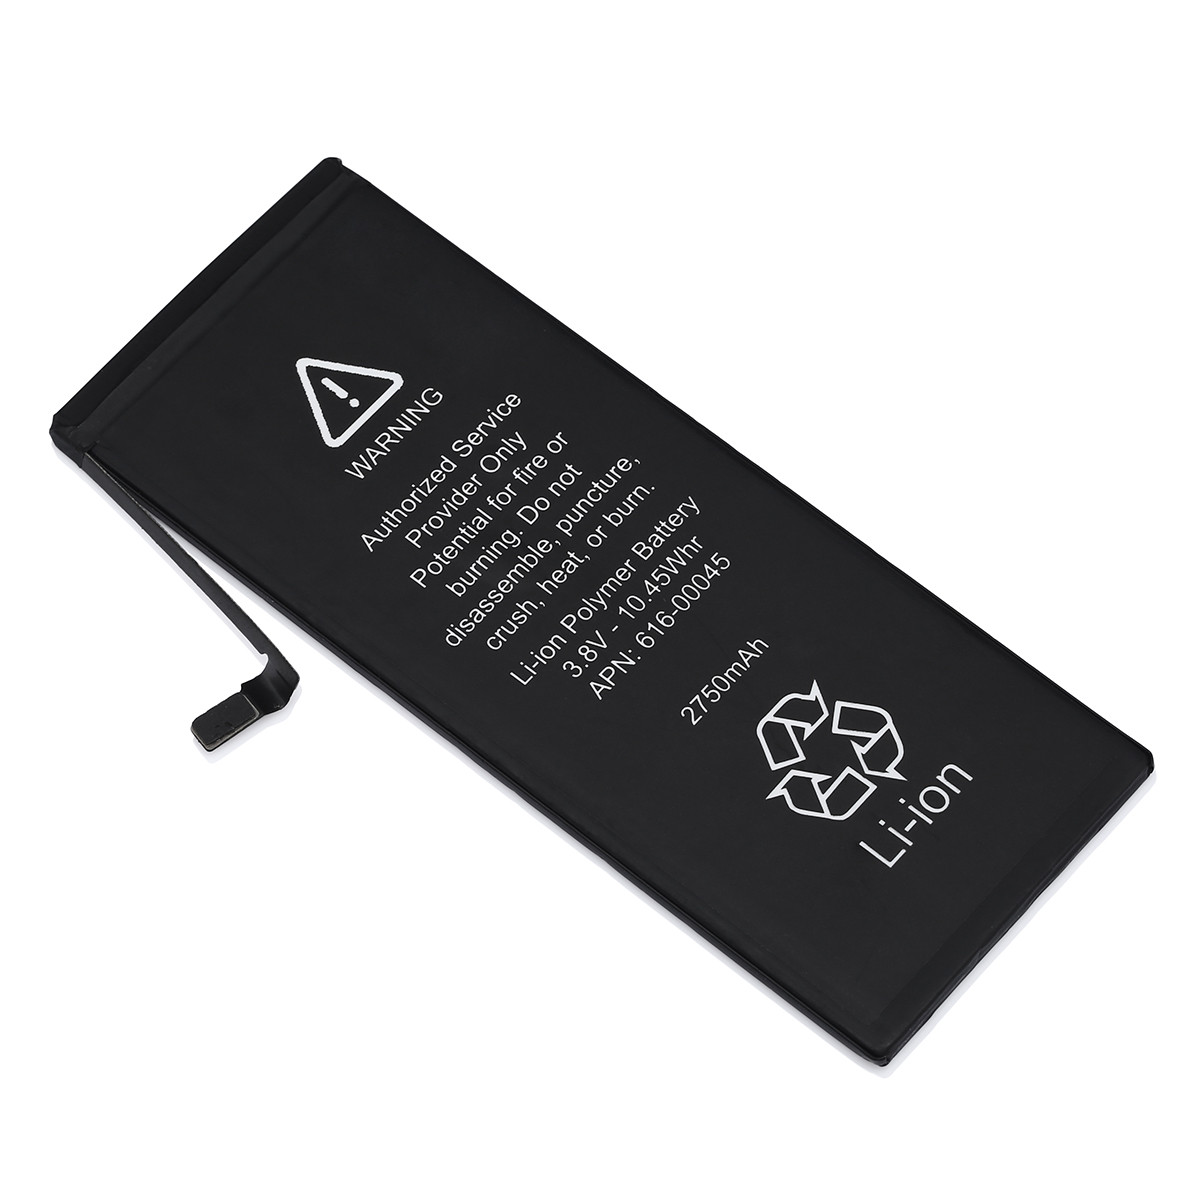 2750mAh Li-ion Battery Replacement With Flex Cable For ... | 1200 x 1200 jpeg 129kB